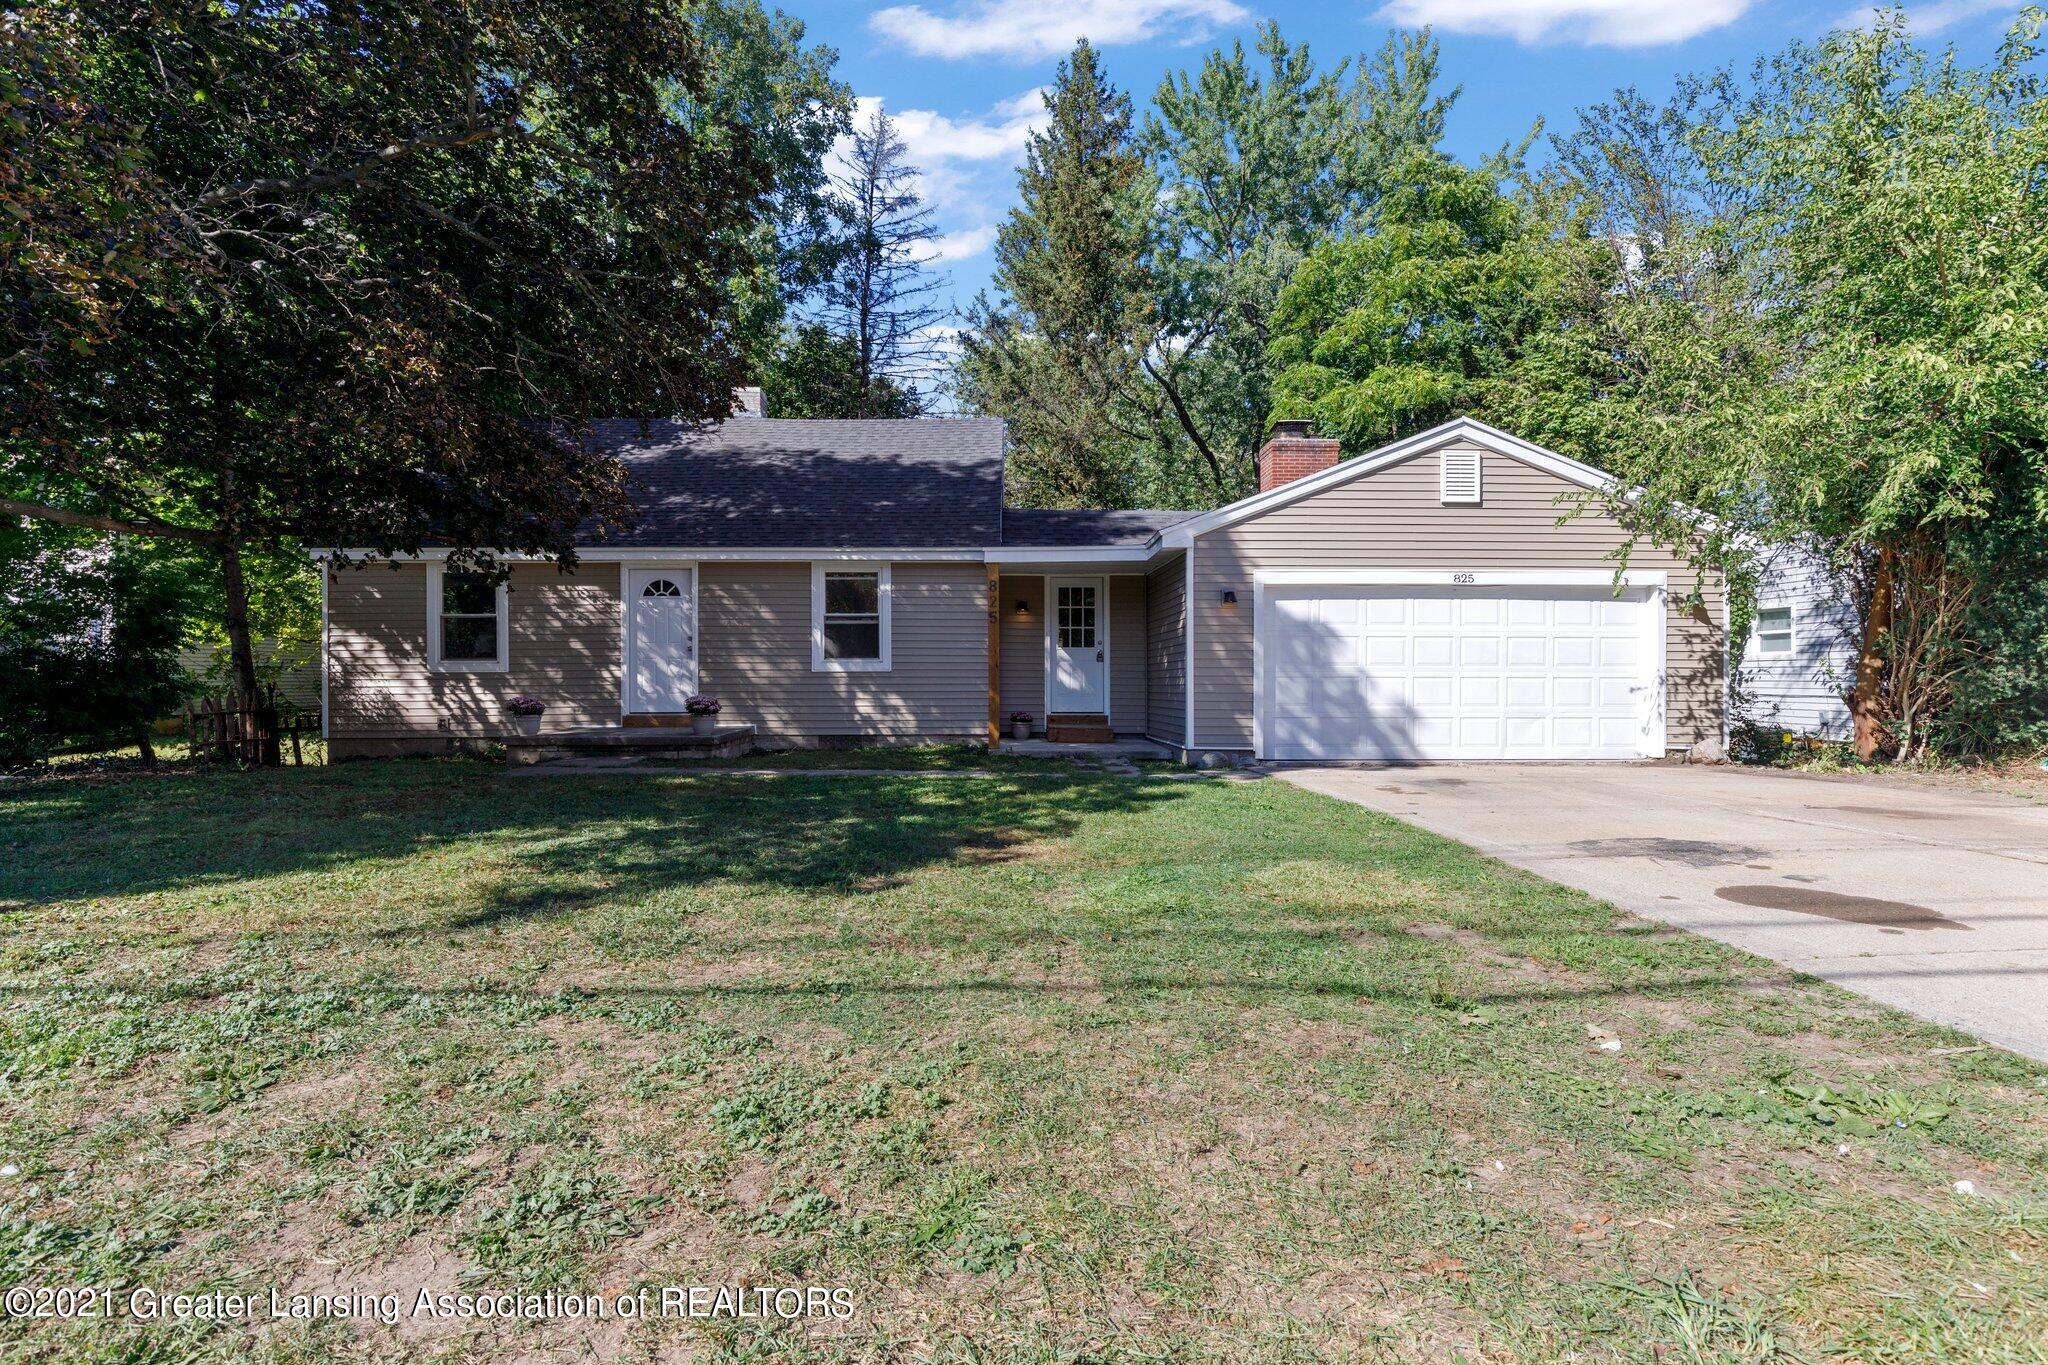 825 E Willoughby Rd - FRONT - 1